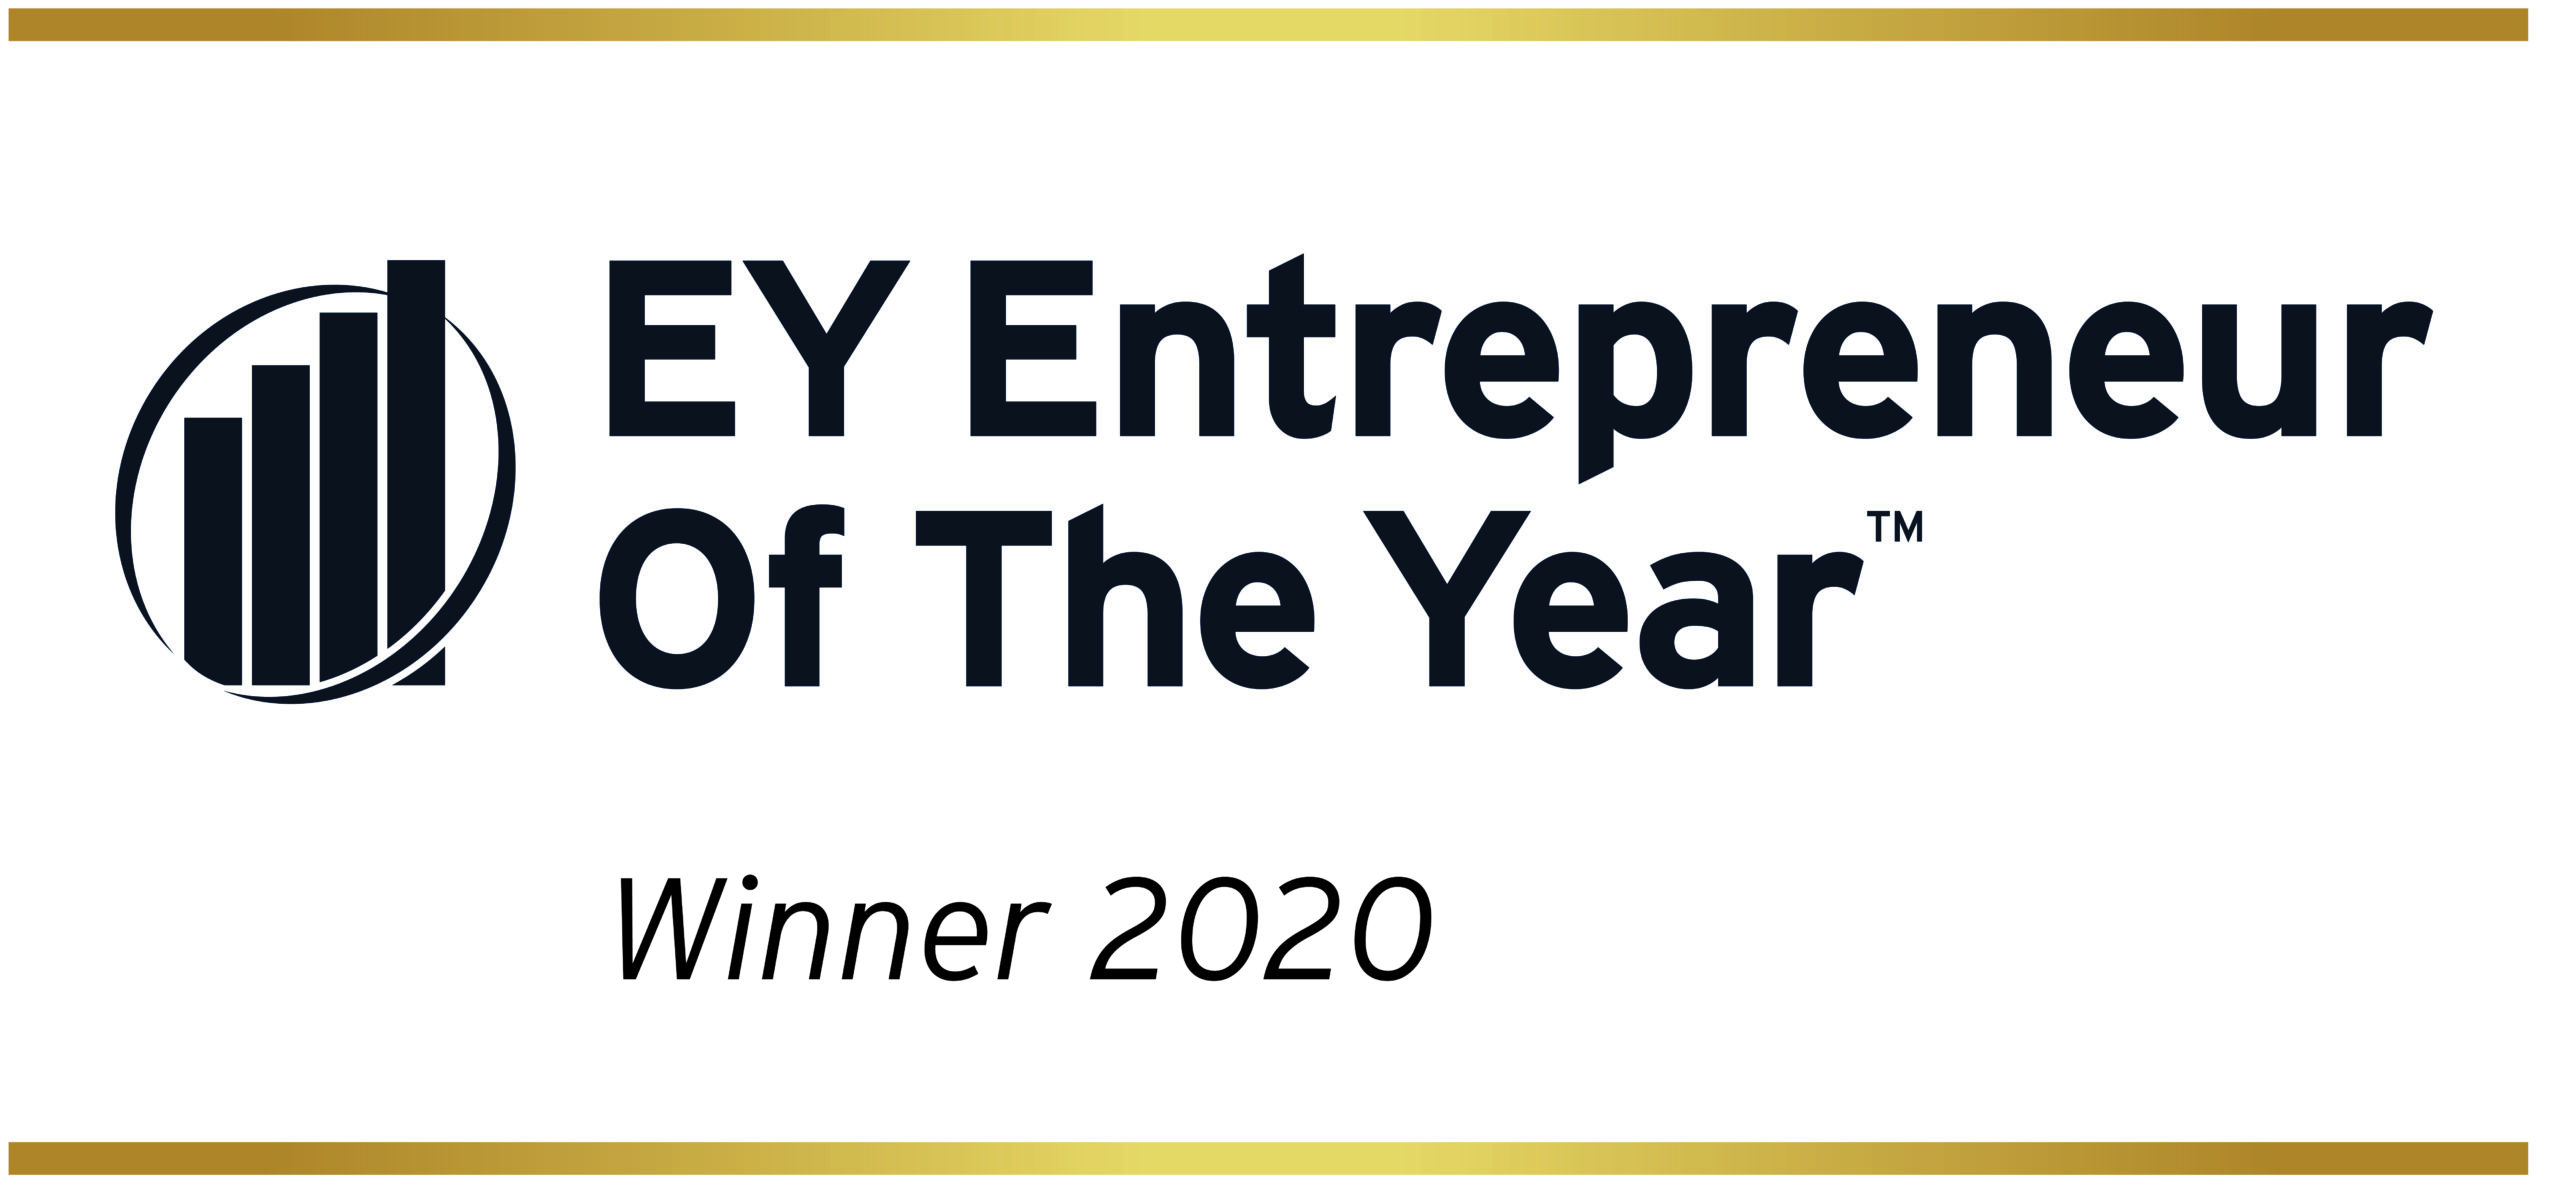 EY Entrepreneur of the Year 2020